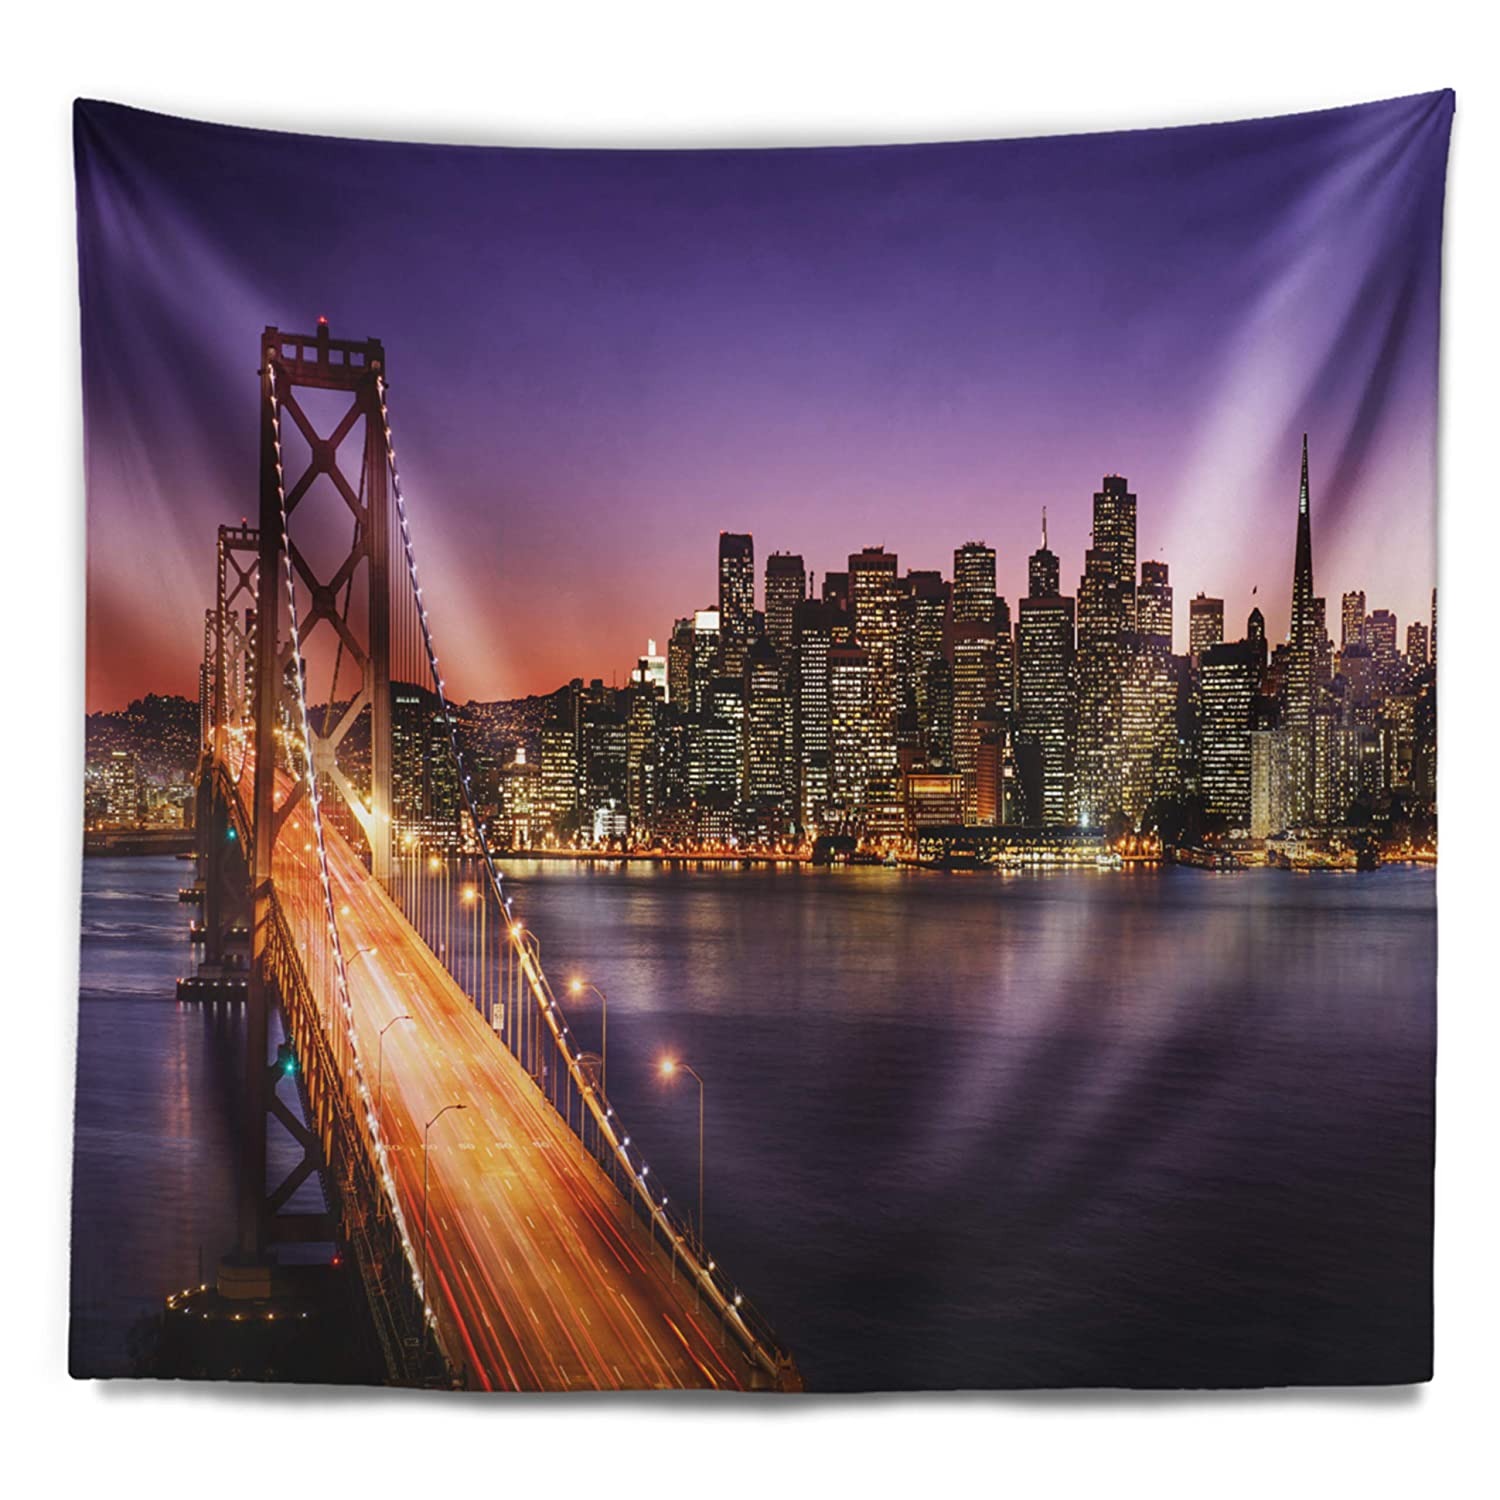 Designart TAP10042-80-68  San Francisco Skyline and Bay Sea Bridge Blanket D/écor Art for Home and Office Wall Tapestry x Large in x 68 in 80 in